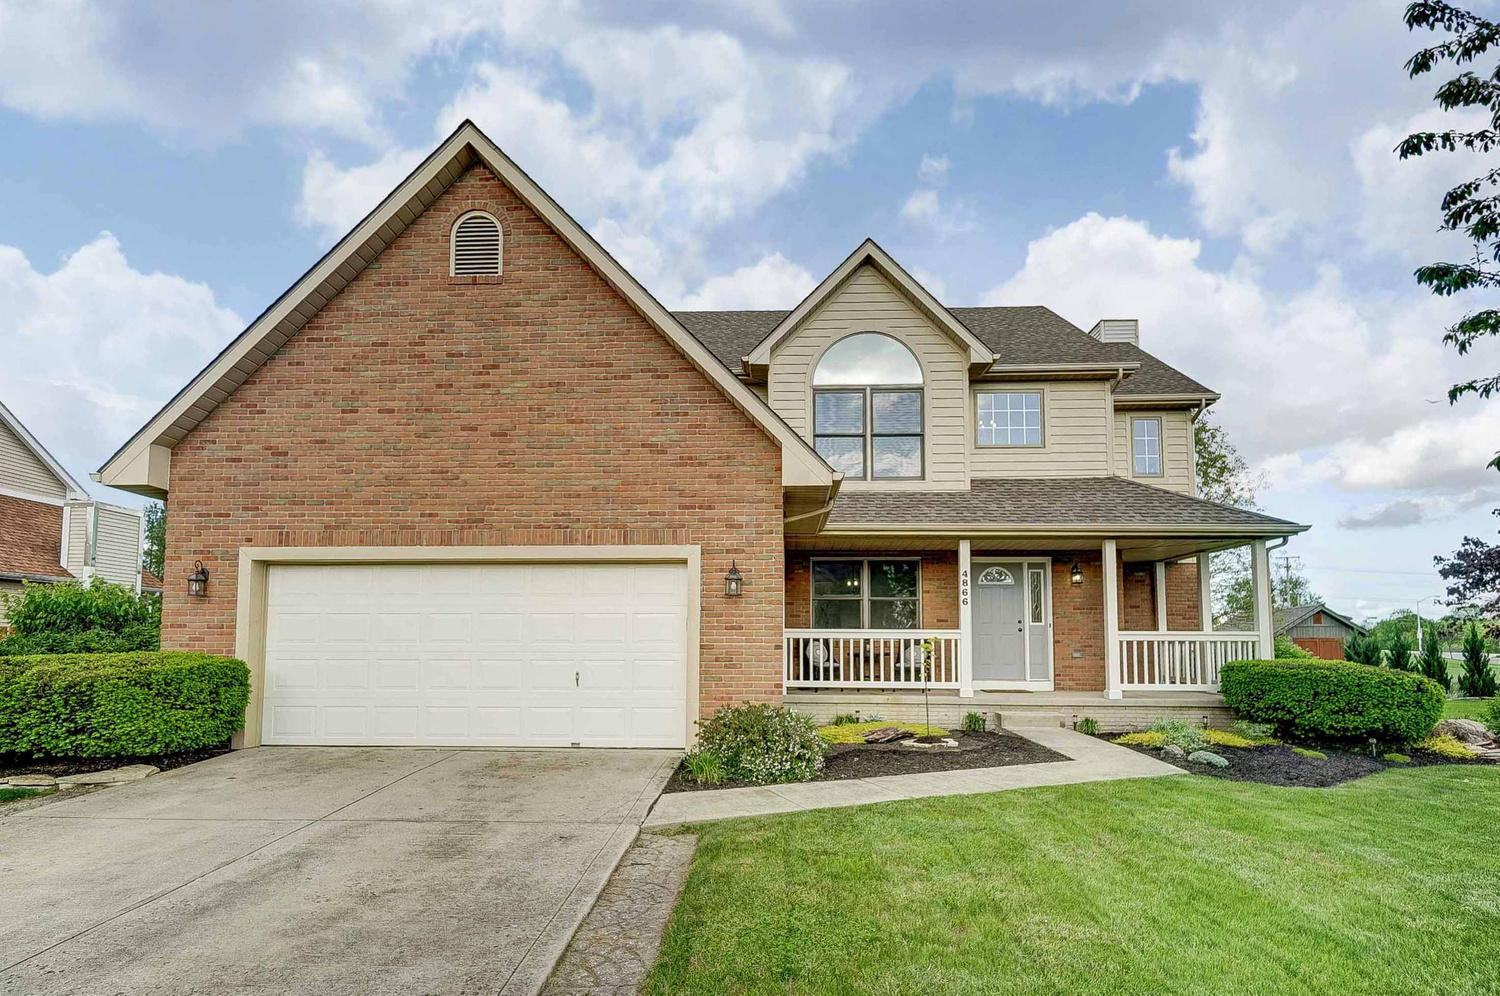 Photo of 4866 Briargrove Drive, Groveport, OH 43125